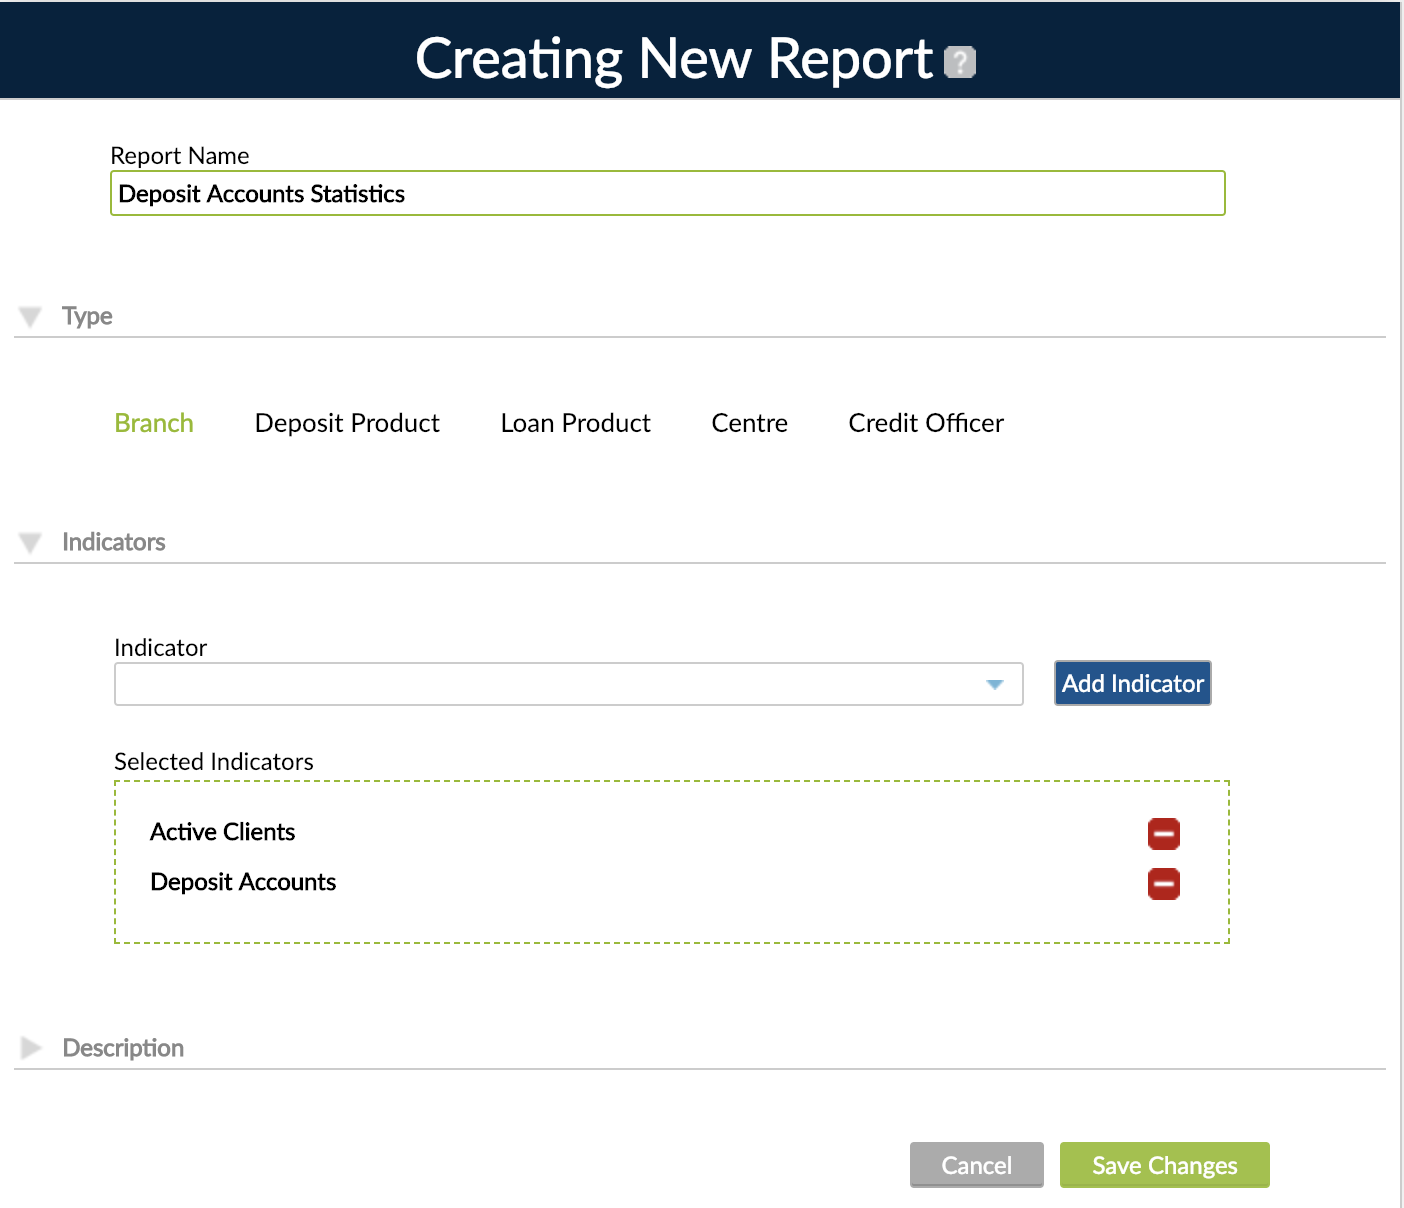 Creating New Report screen with Report Name, Type, Indicators and Description.